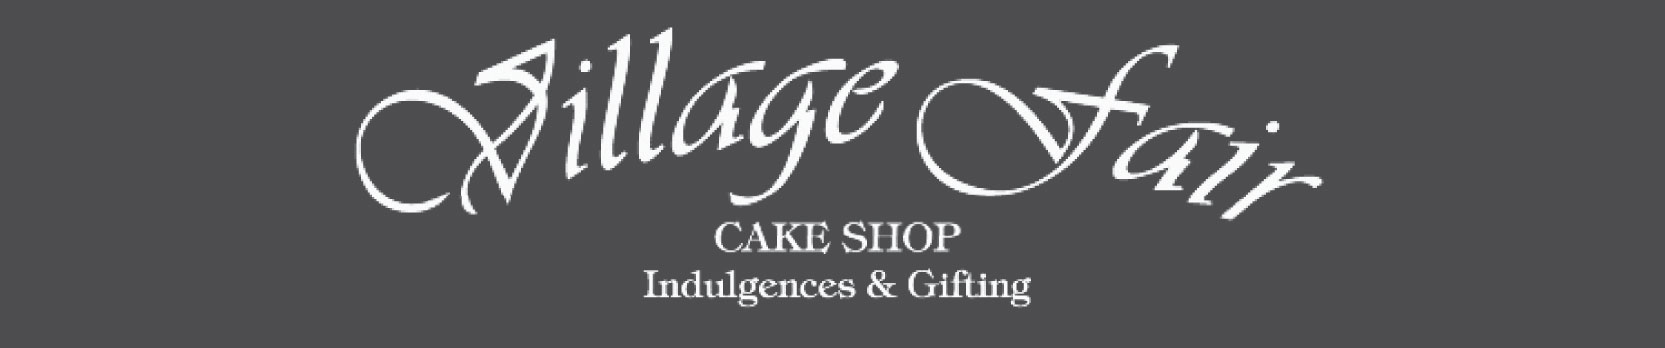 Village Fair Cake Shop